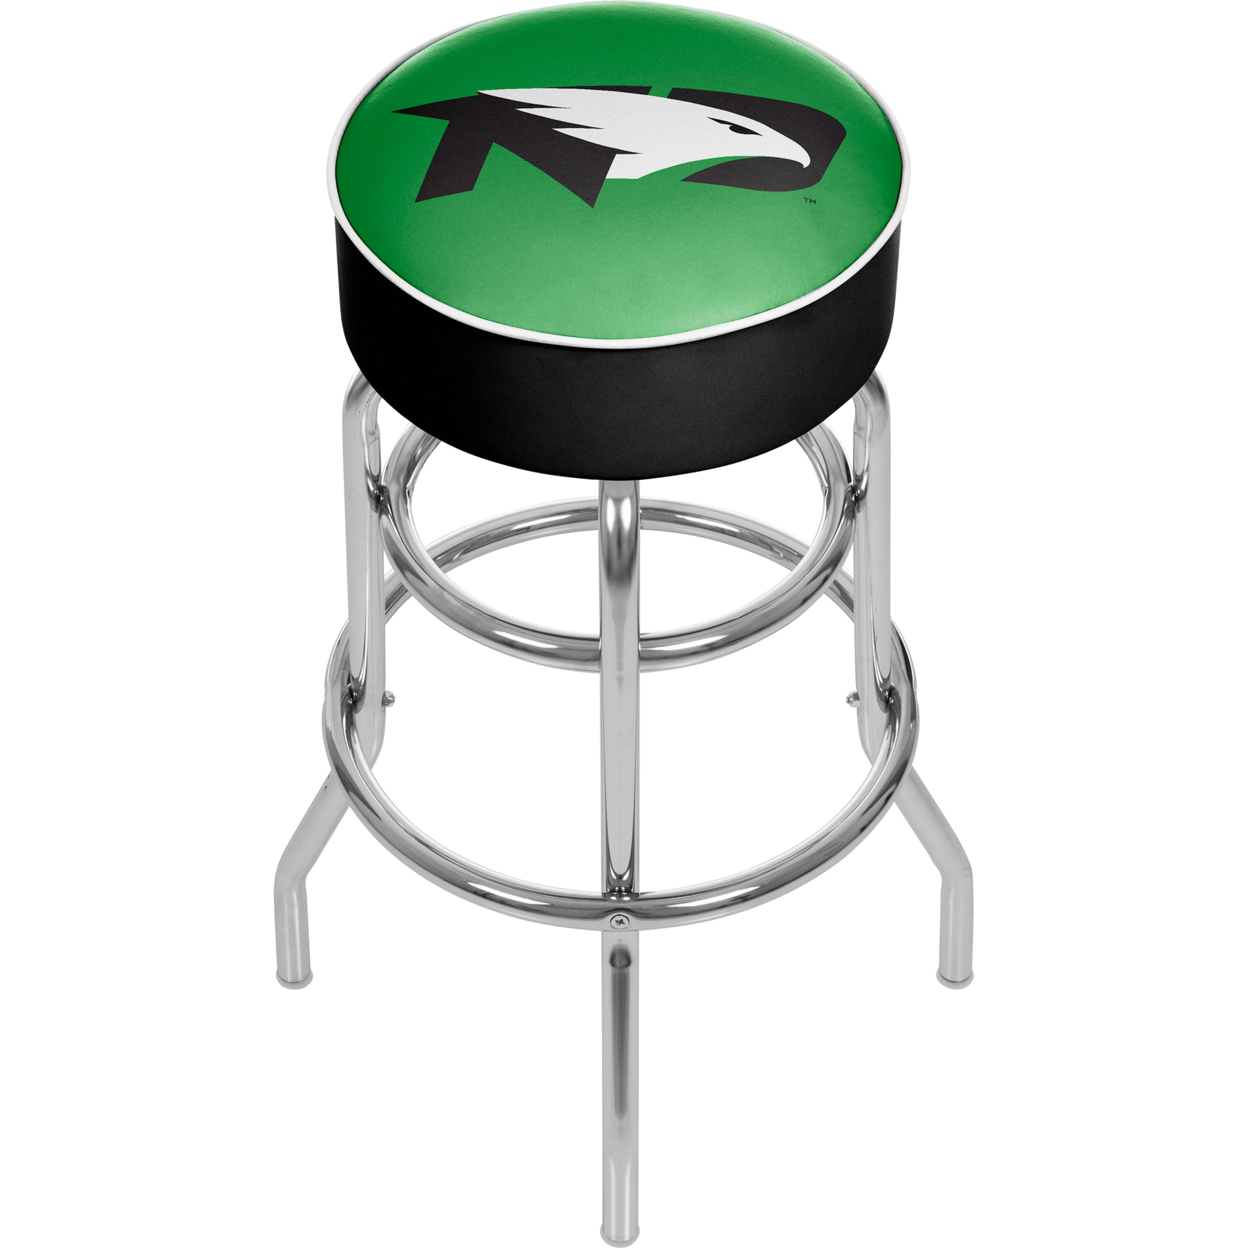 University of North Dakota Padded Swivel Bar Stool 30 Inches High